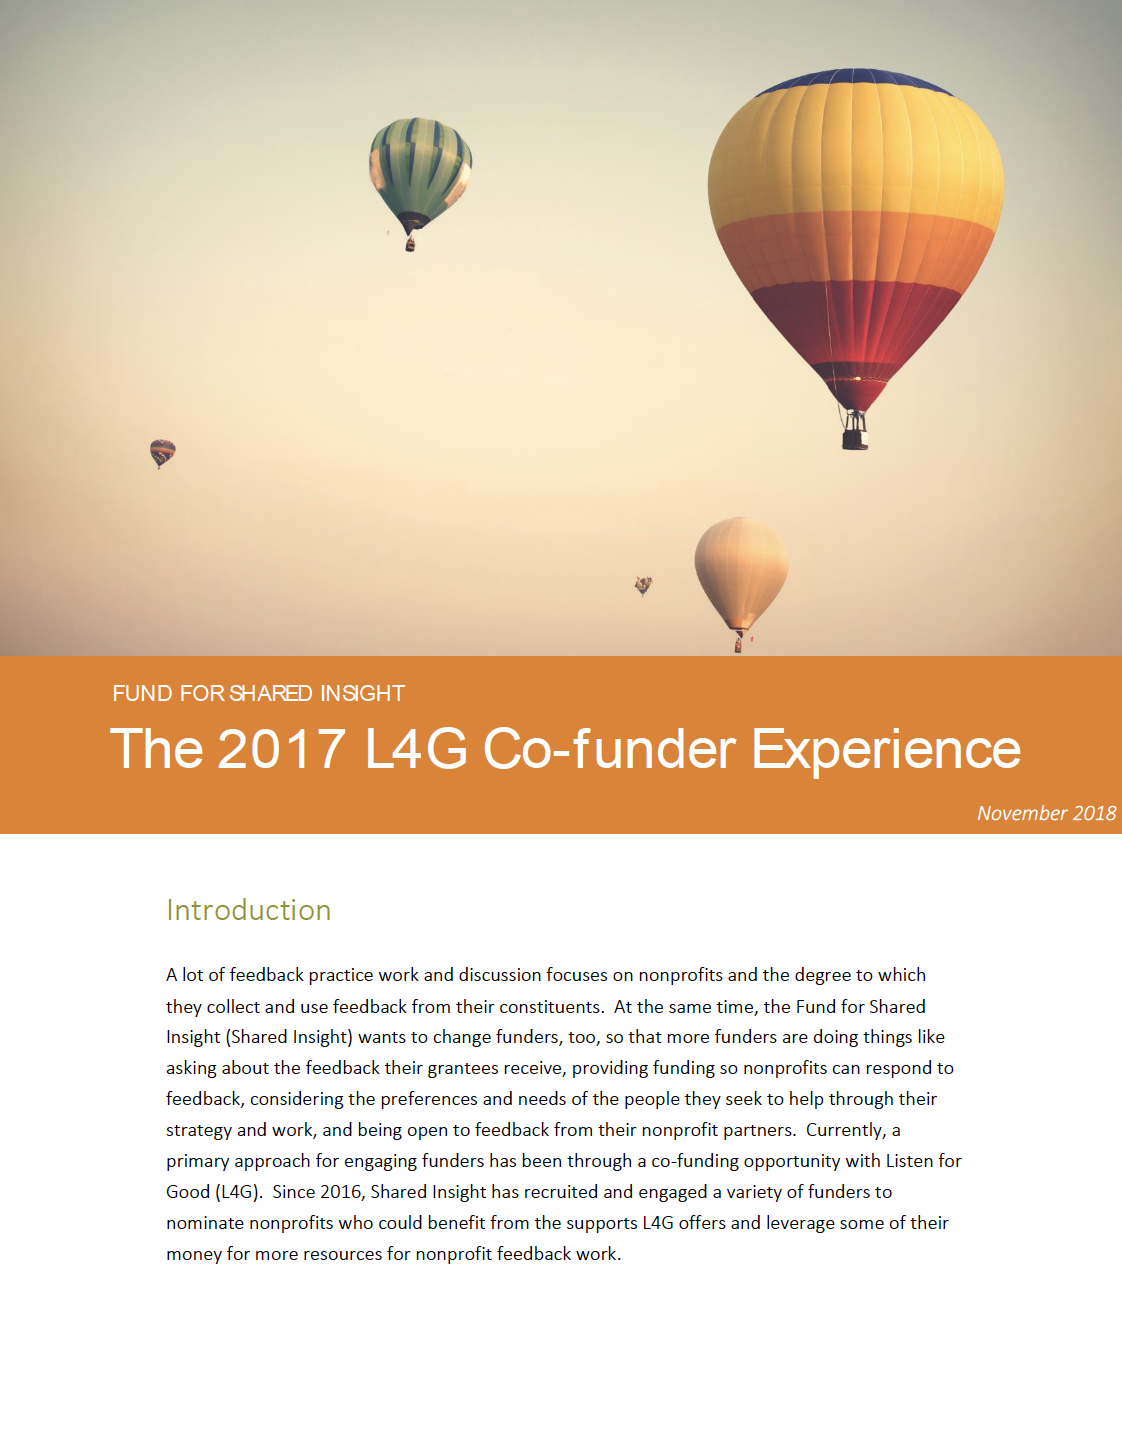 The 2017 L4G Co-funder Experience